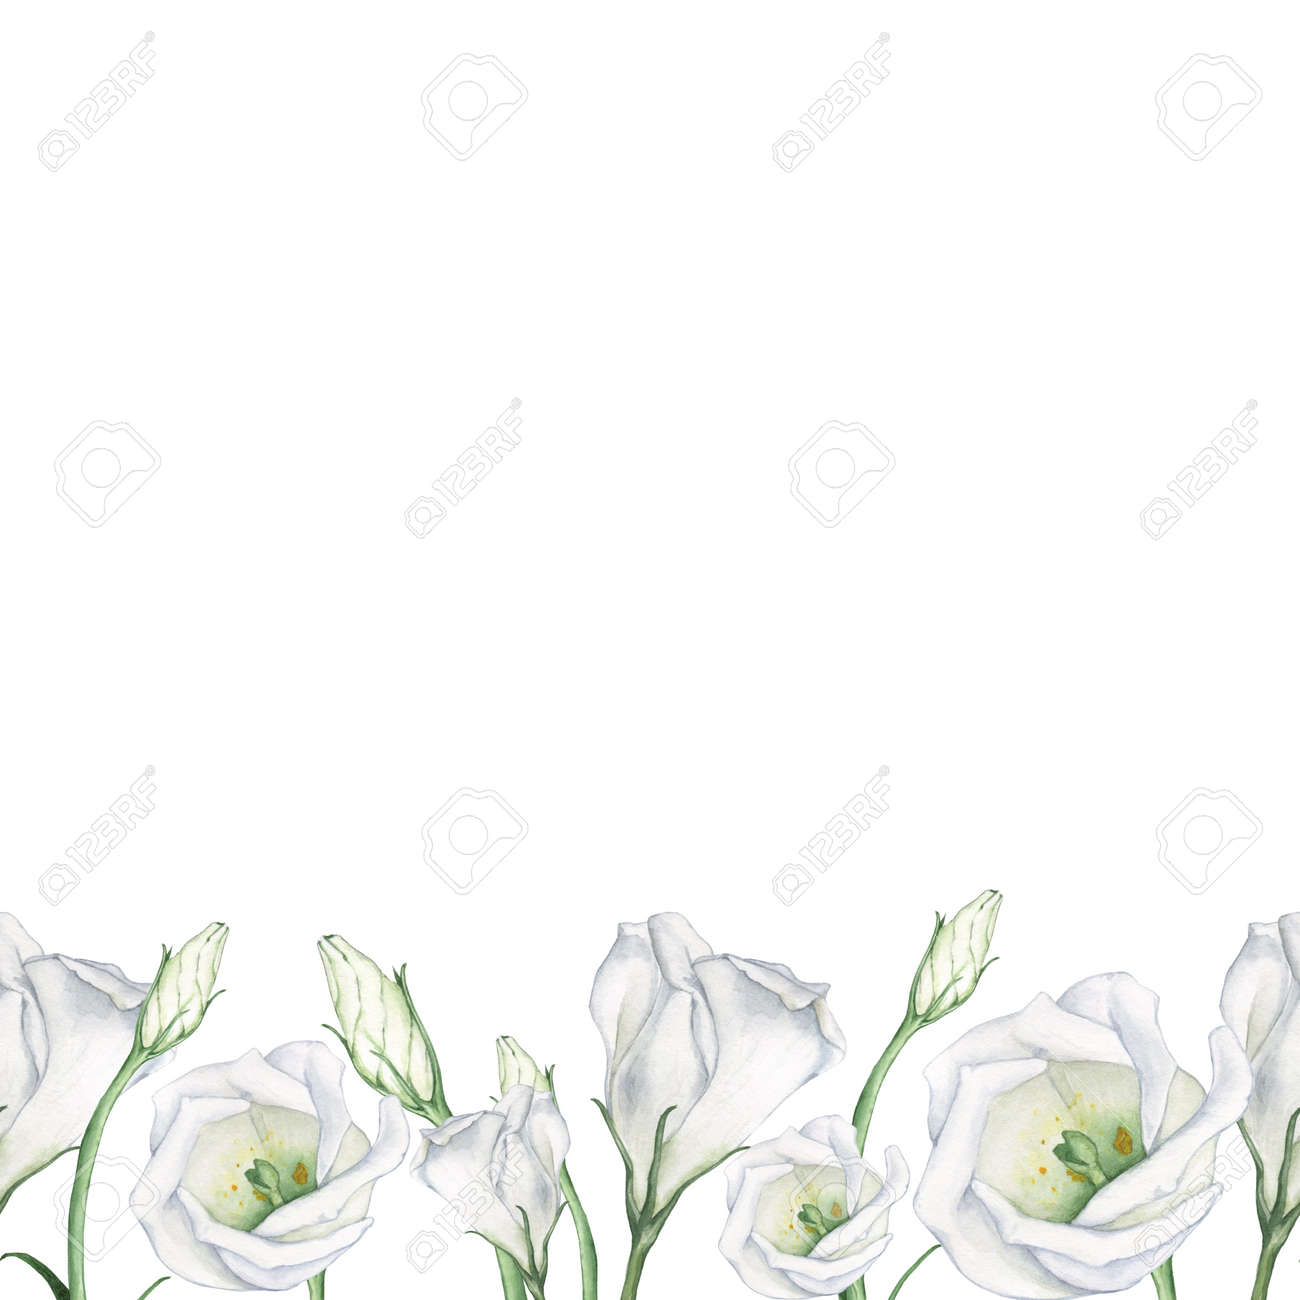 Seamless floral pattern of white flowers watercolor painting seamless floral pattern of white flowers watercolor painting hand drawing decorative element suitable mightylinksfo